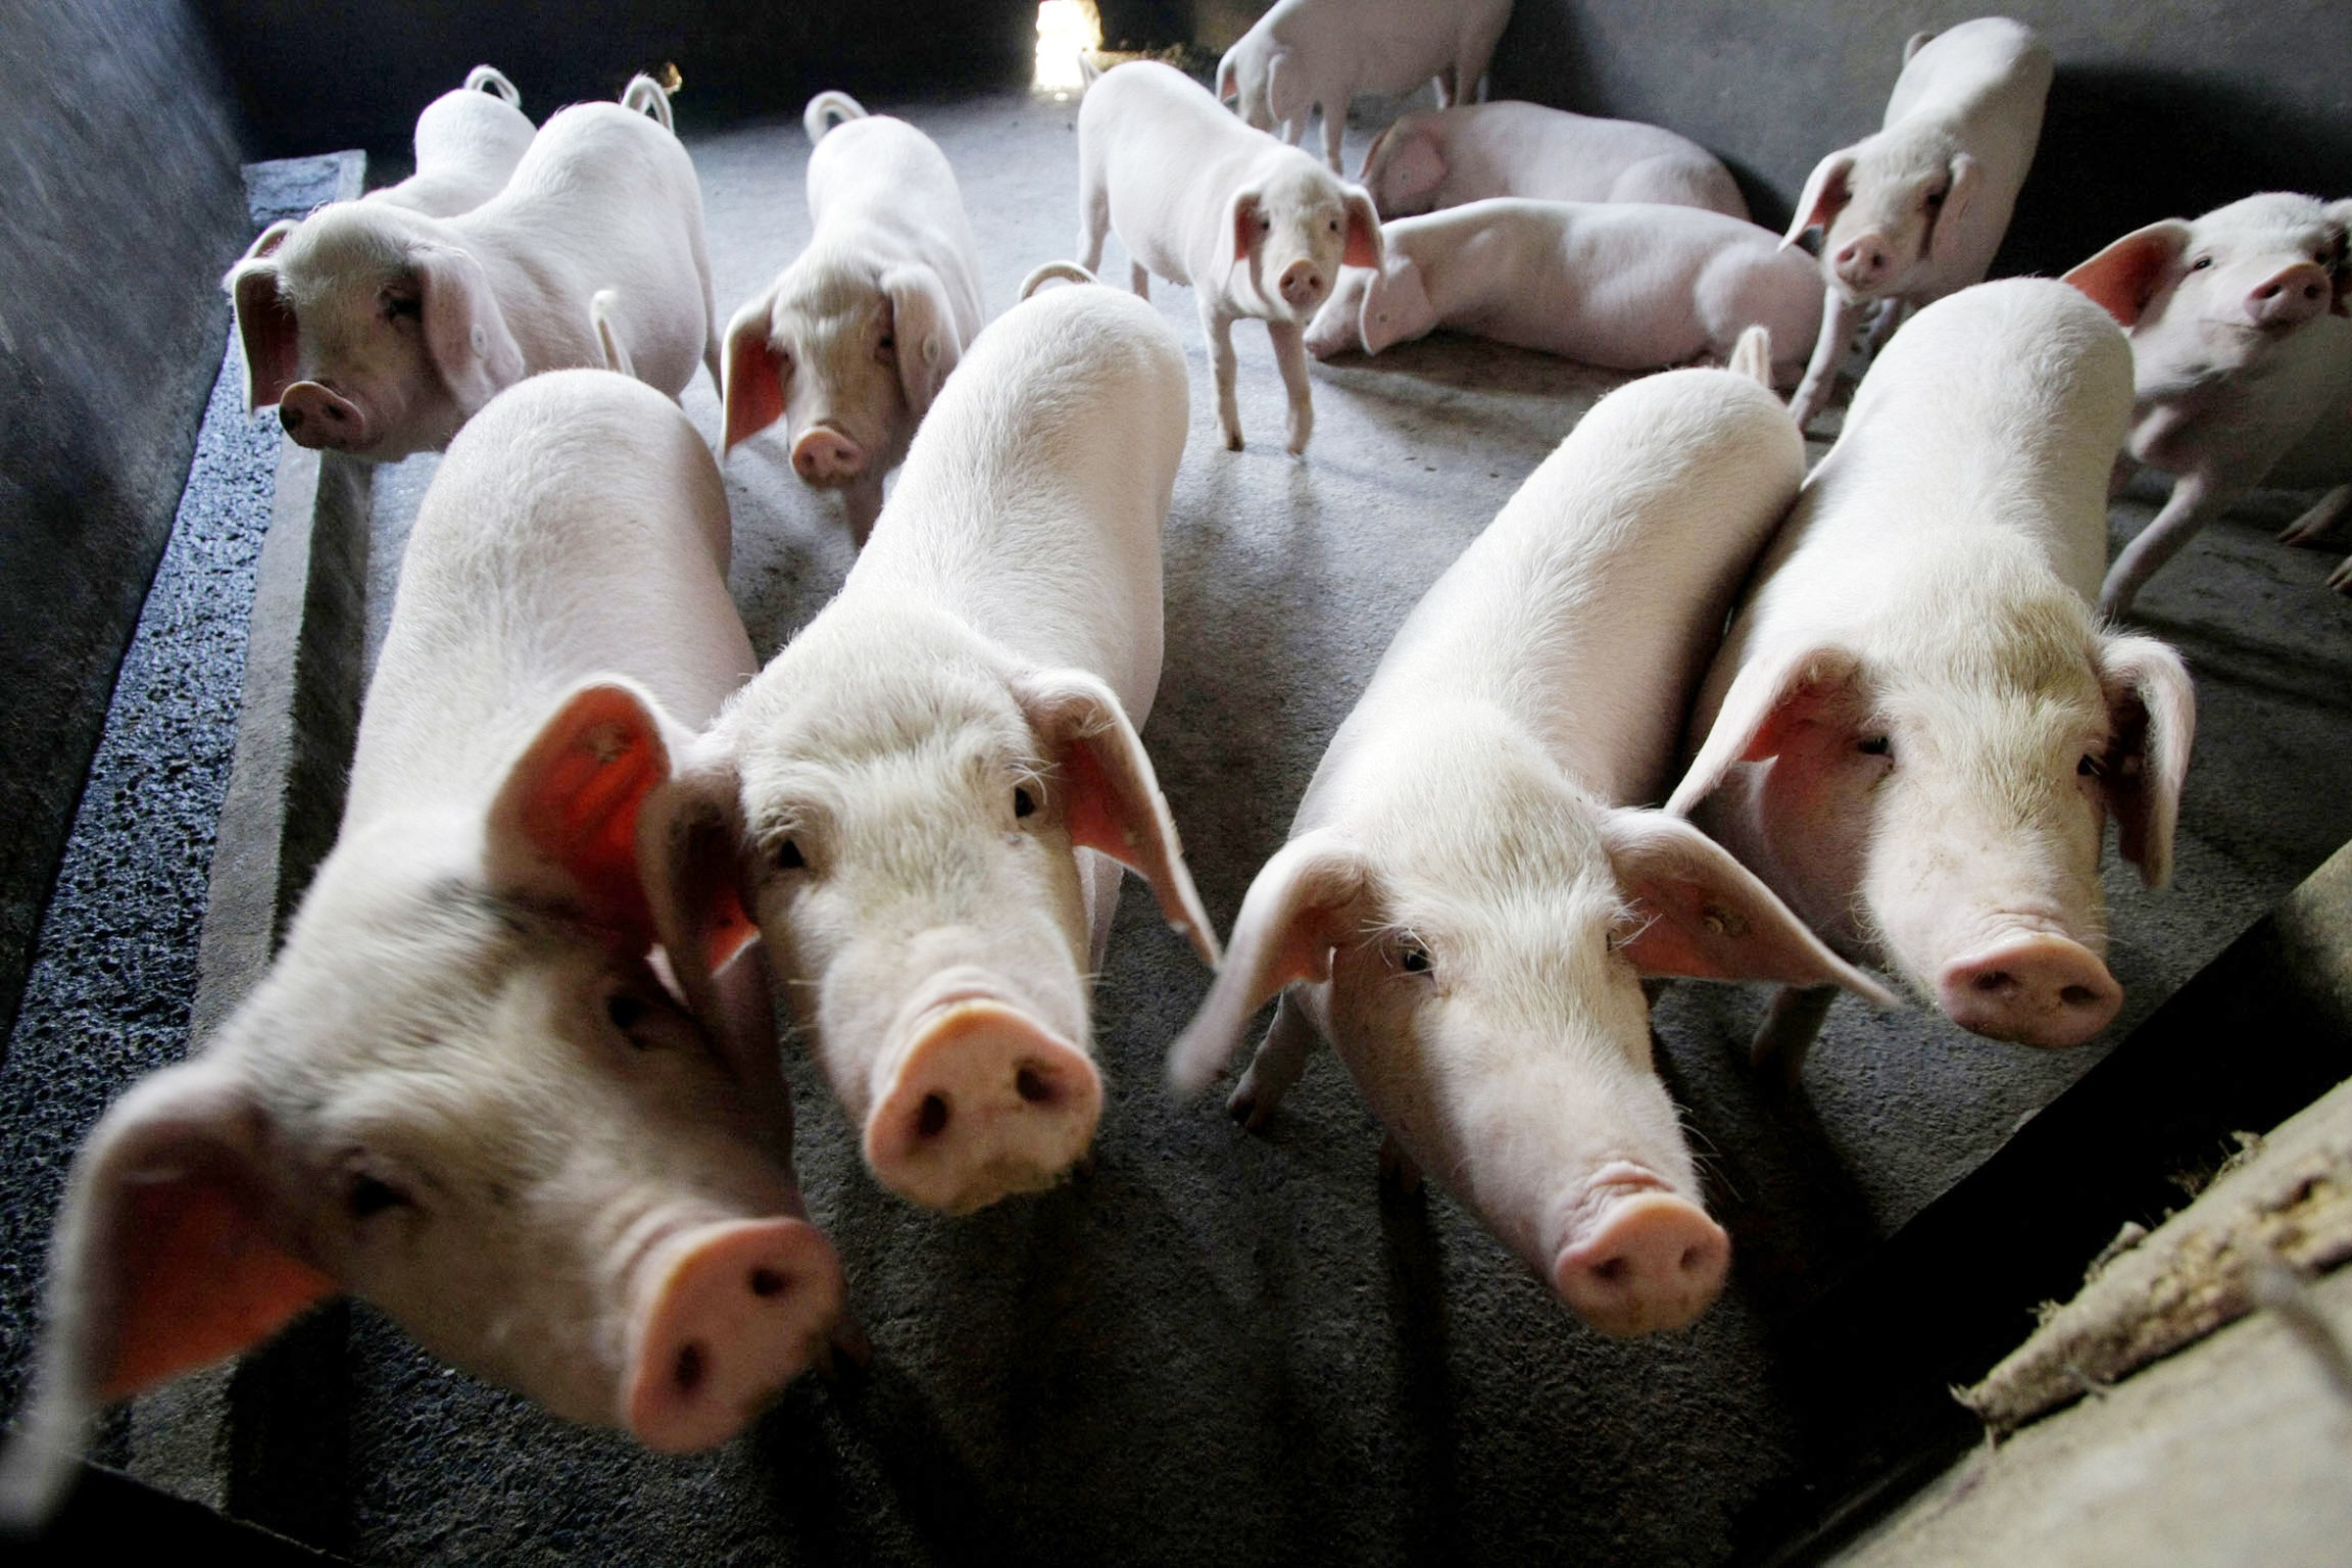 Another Chinese farm hit by African swine fever